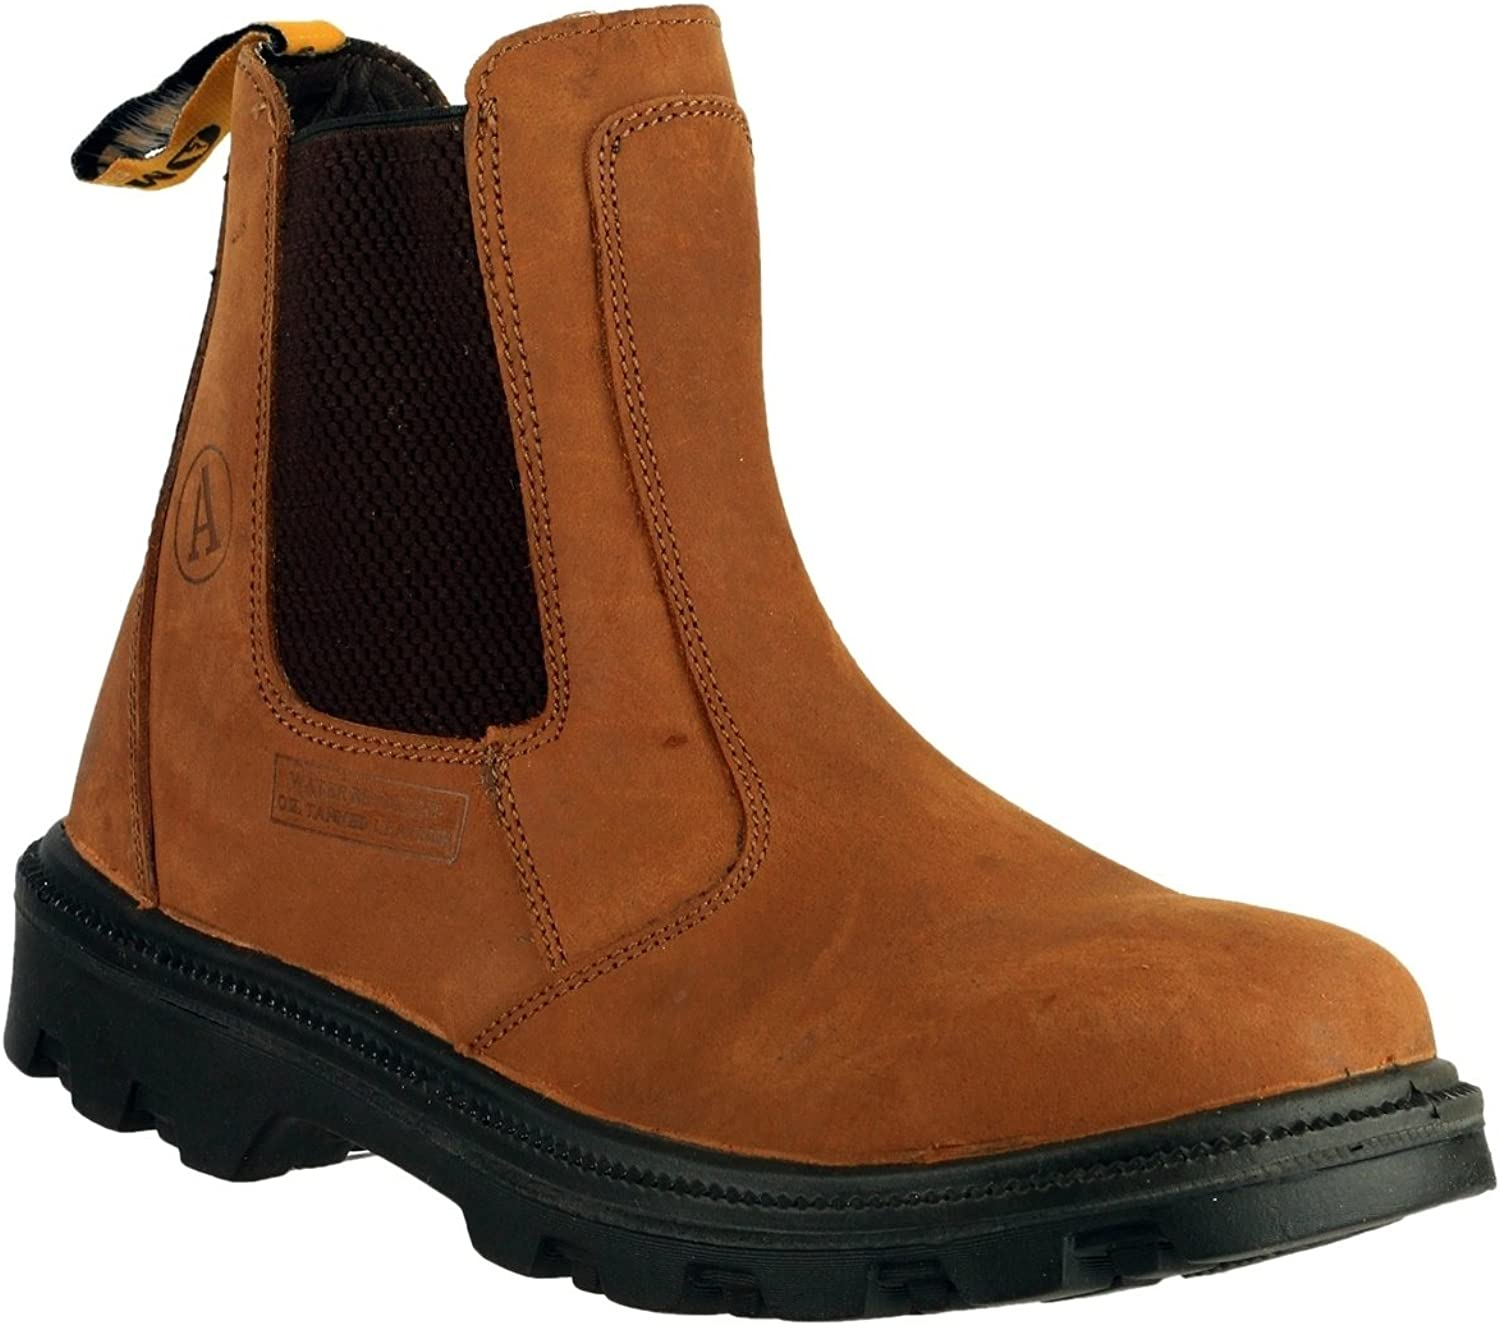 Mens Amblers Brown Waxy Safety Toe Cap Work Dealers Boots Sizes 6 7 8 9 10 11 12